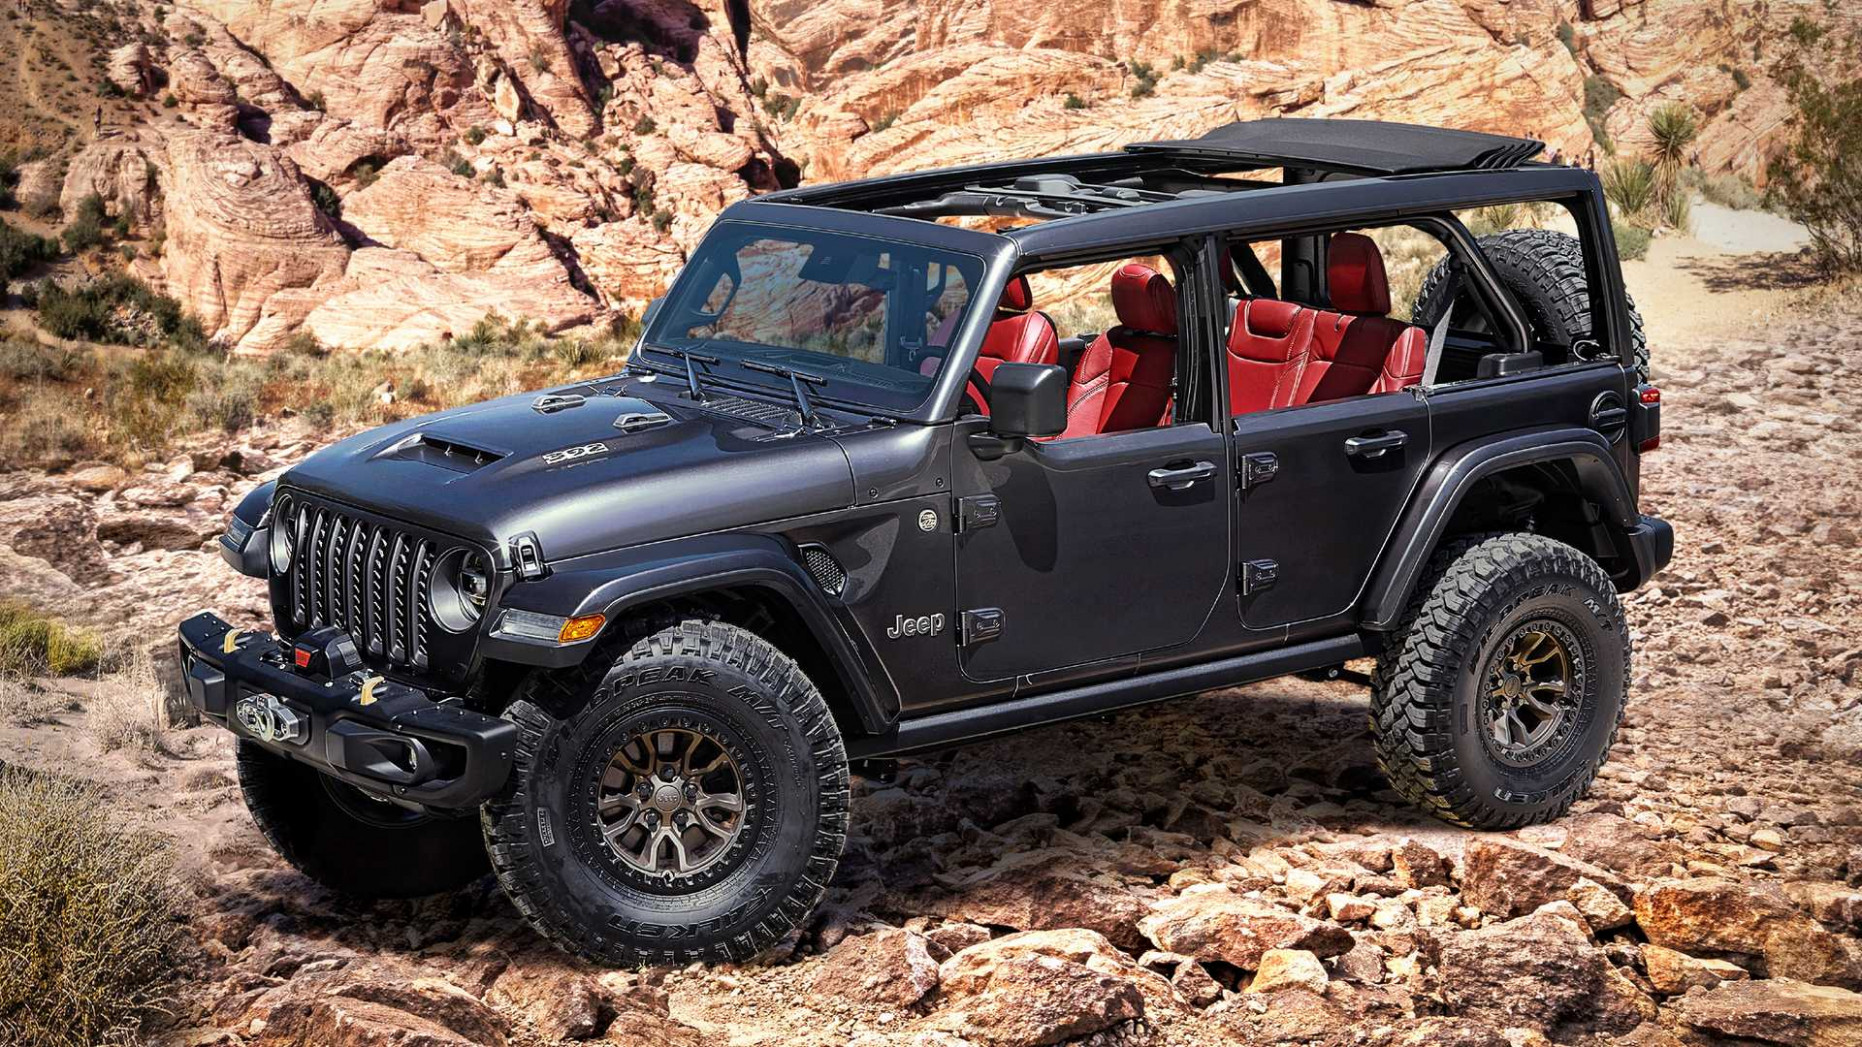 Model Jeep Rubicon 2022